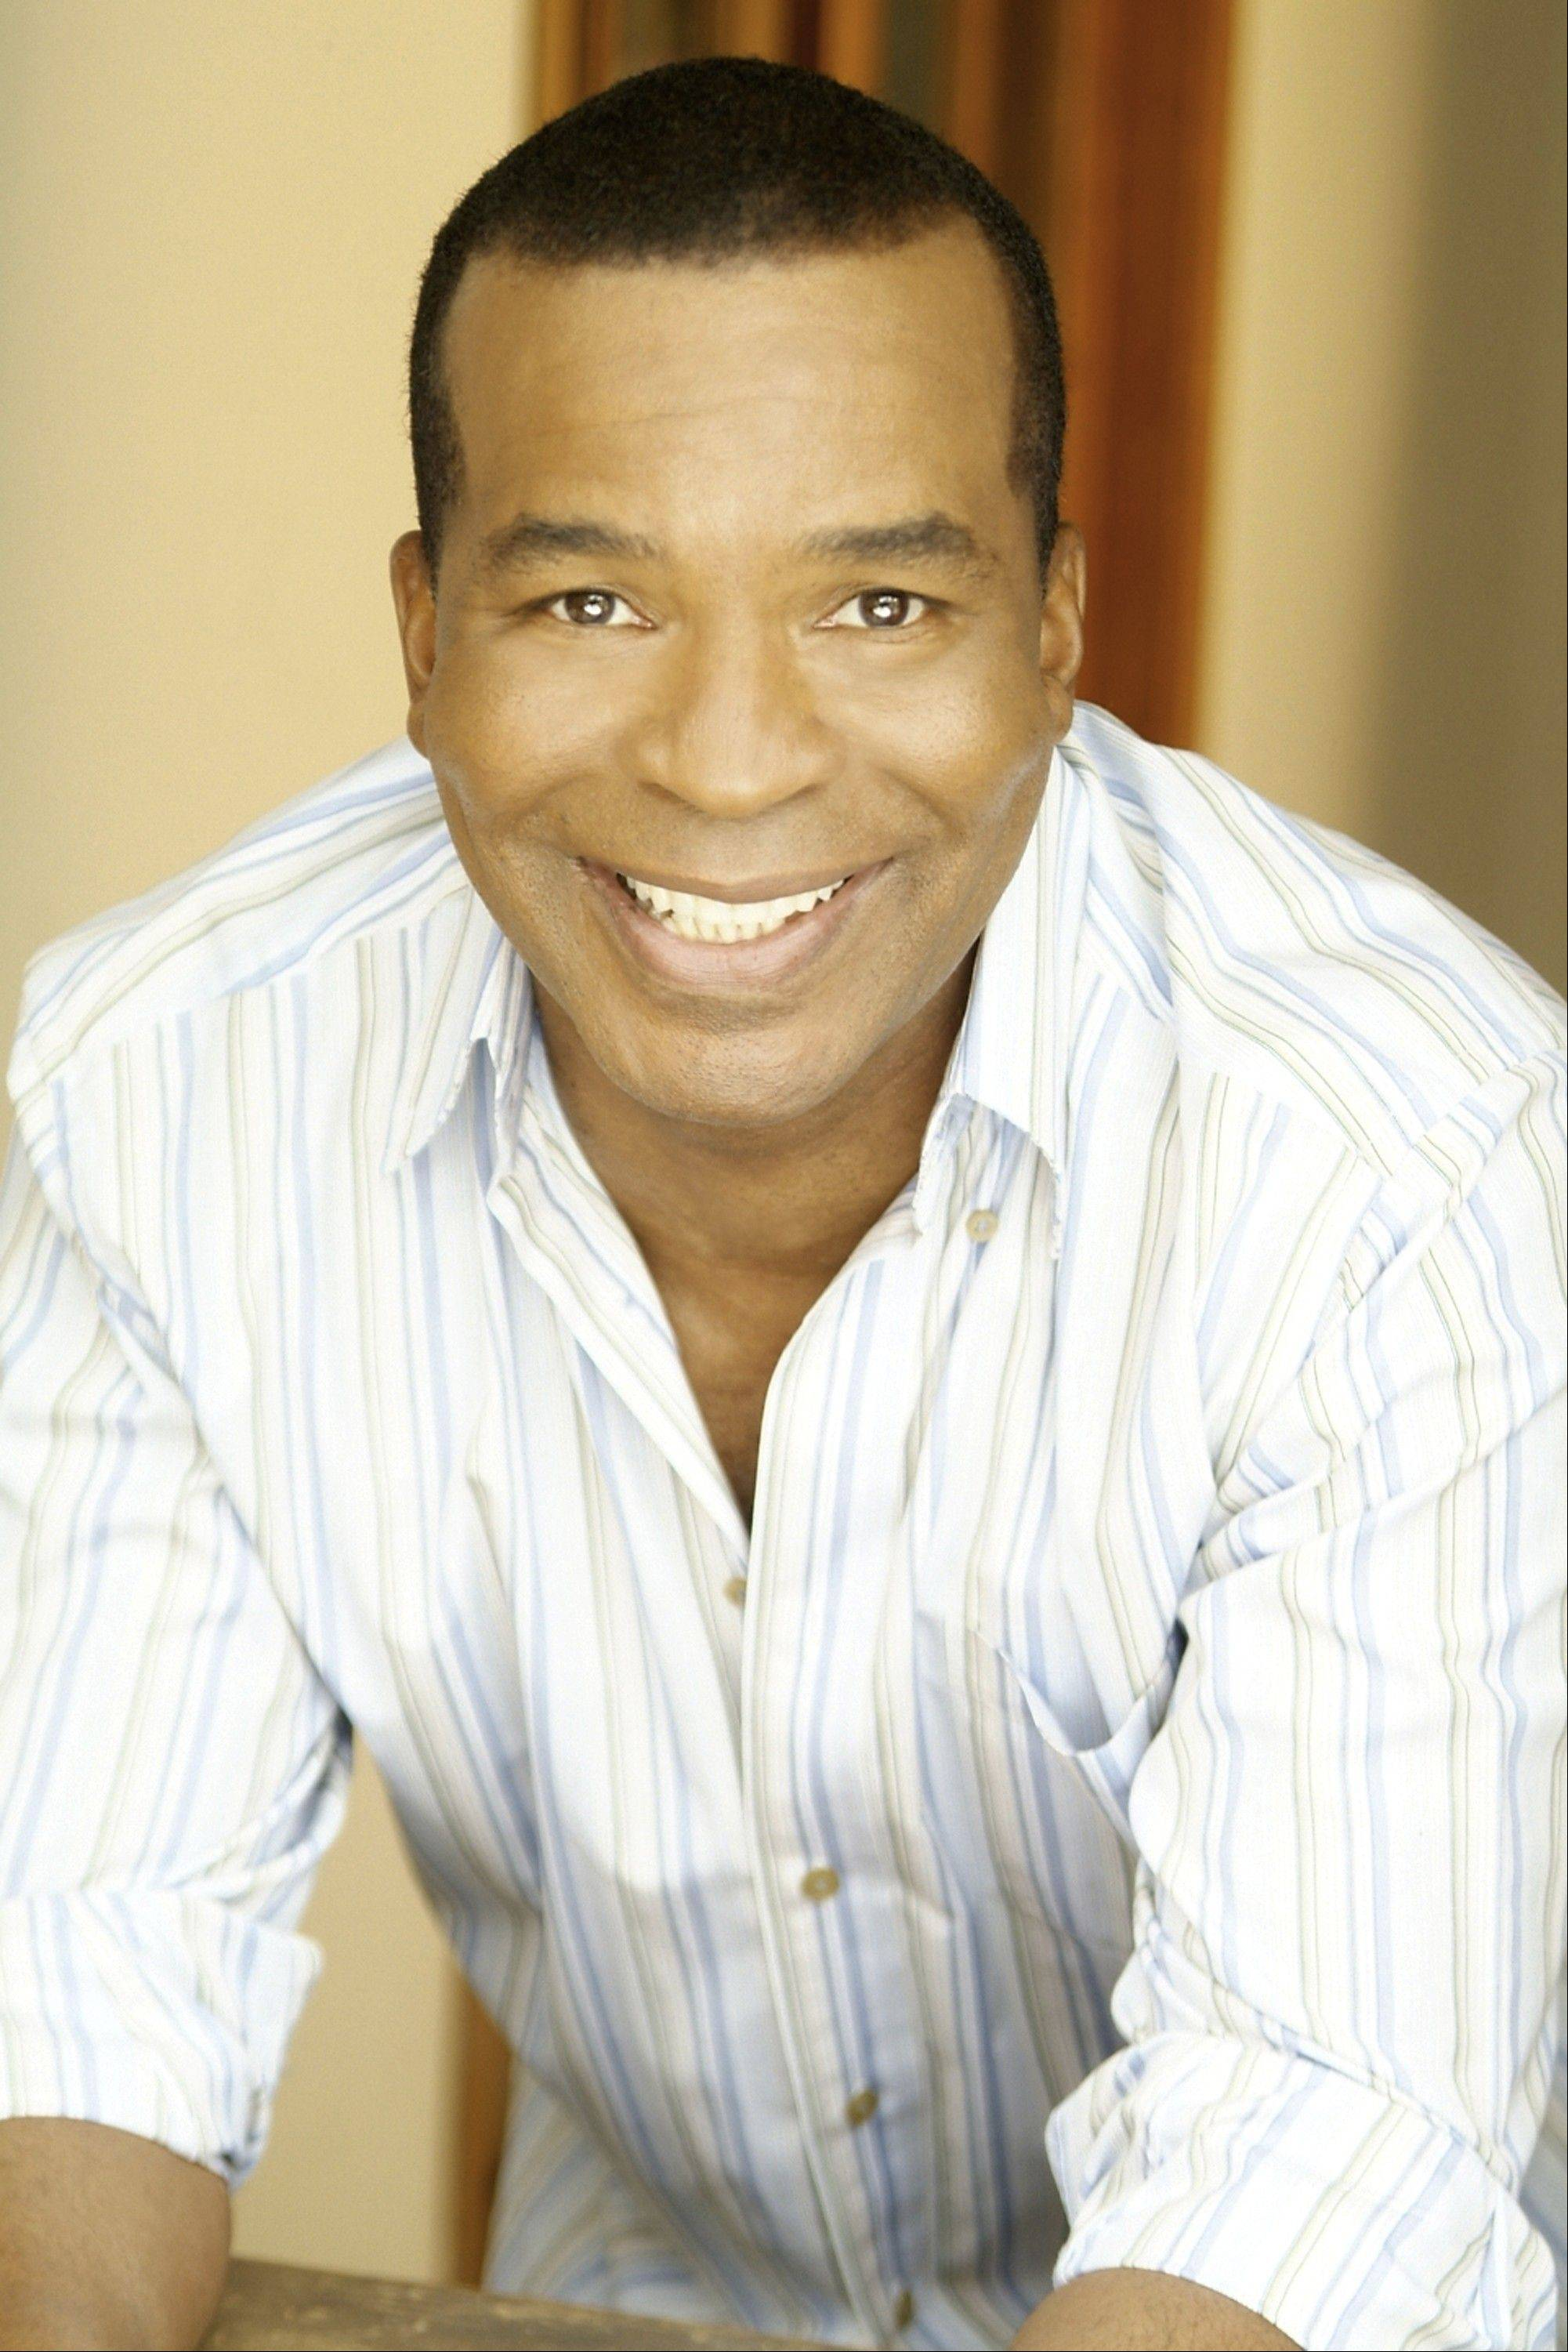 Comedian and actor David Alan Grier is set to perform at the Improv Comedy Showcase in Schaumburg.